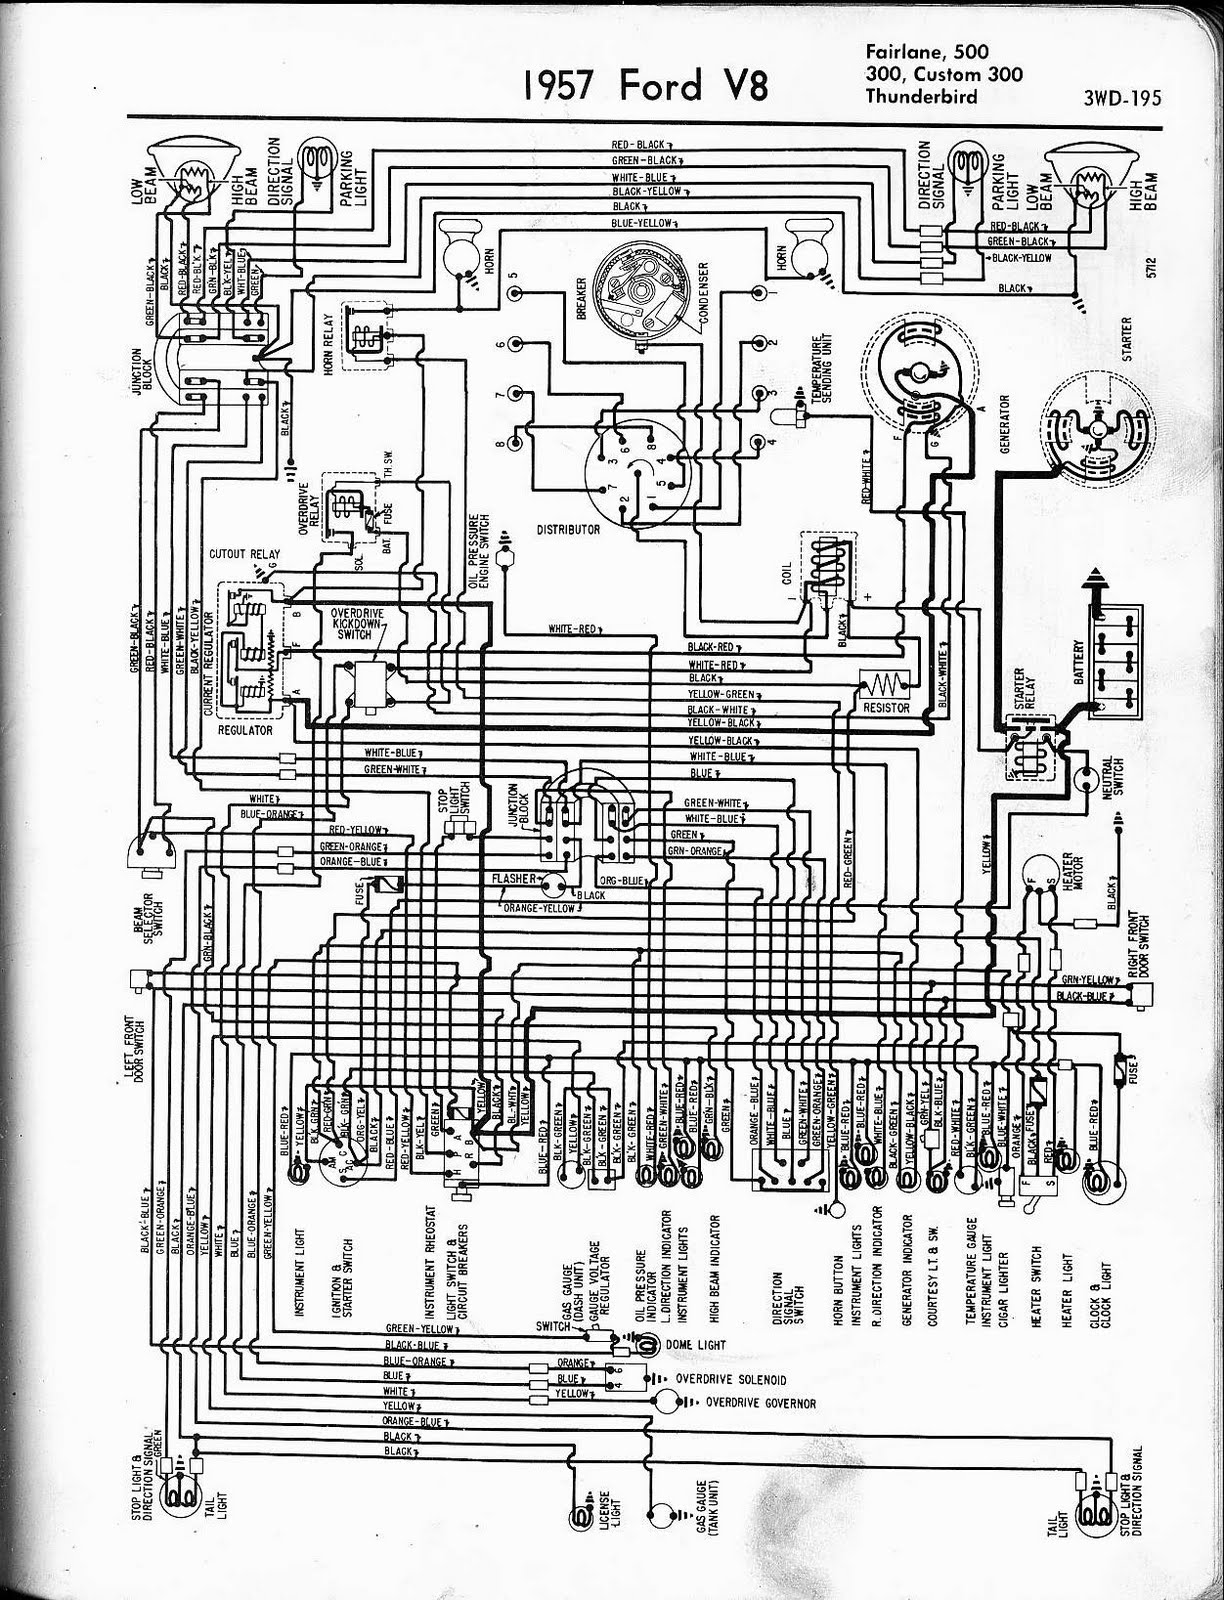 1955 ford fairlane wiring diagram air compressor piping layout 1956 harness all data1957 thunderbird schematic detailed